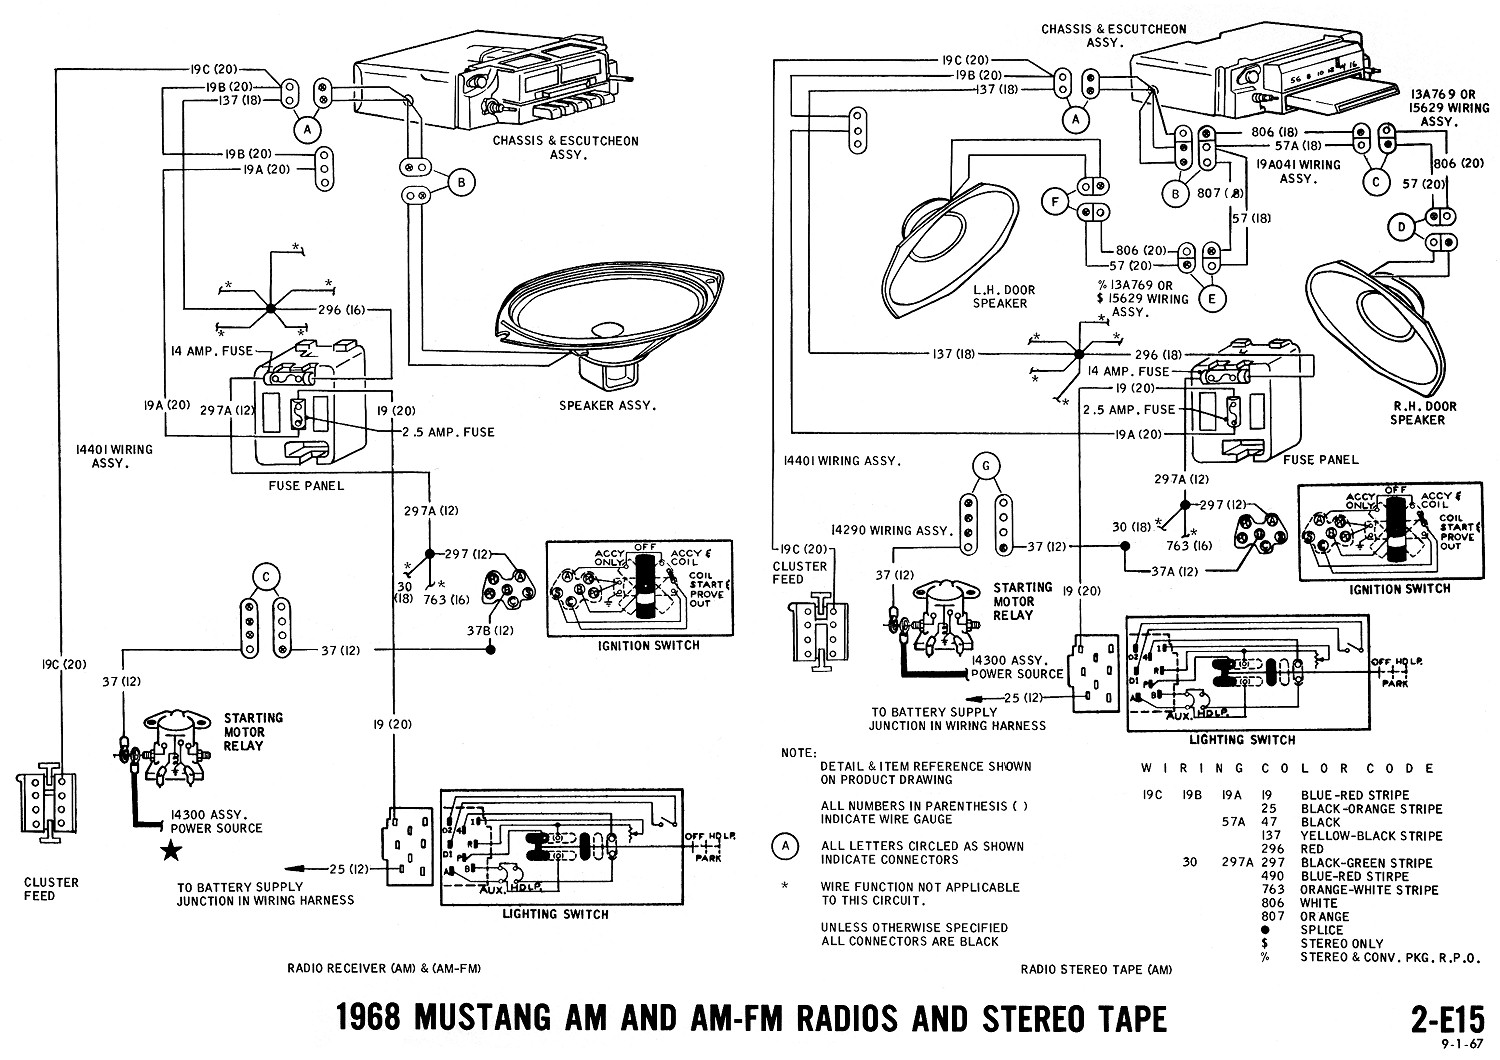 E15 1968 mustang wiring diagrams evolving software 2007 mustang gt stereo wiring diagram at alyssarenee.co